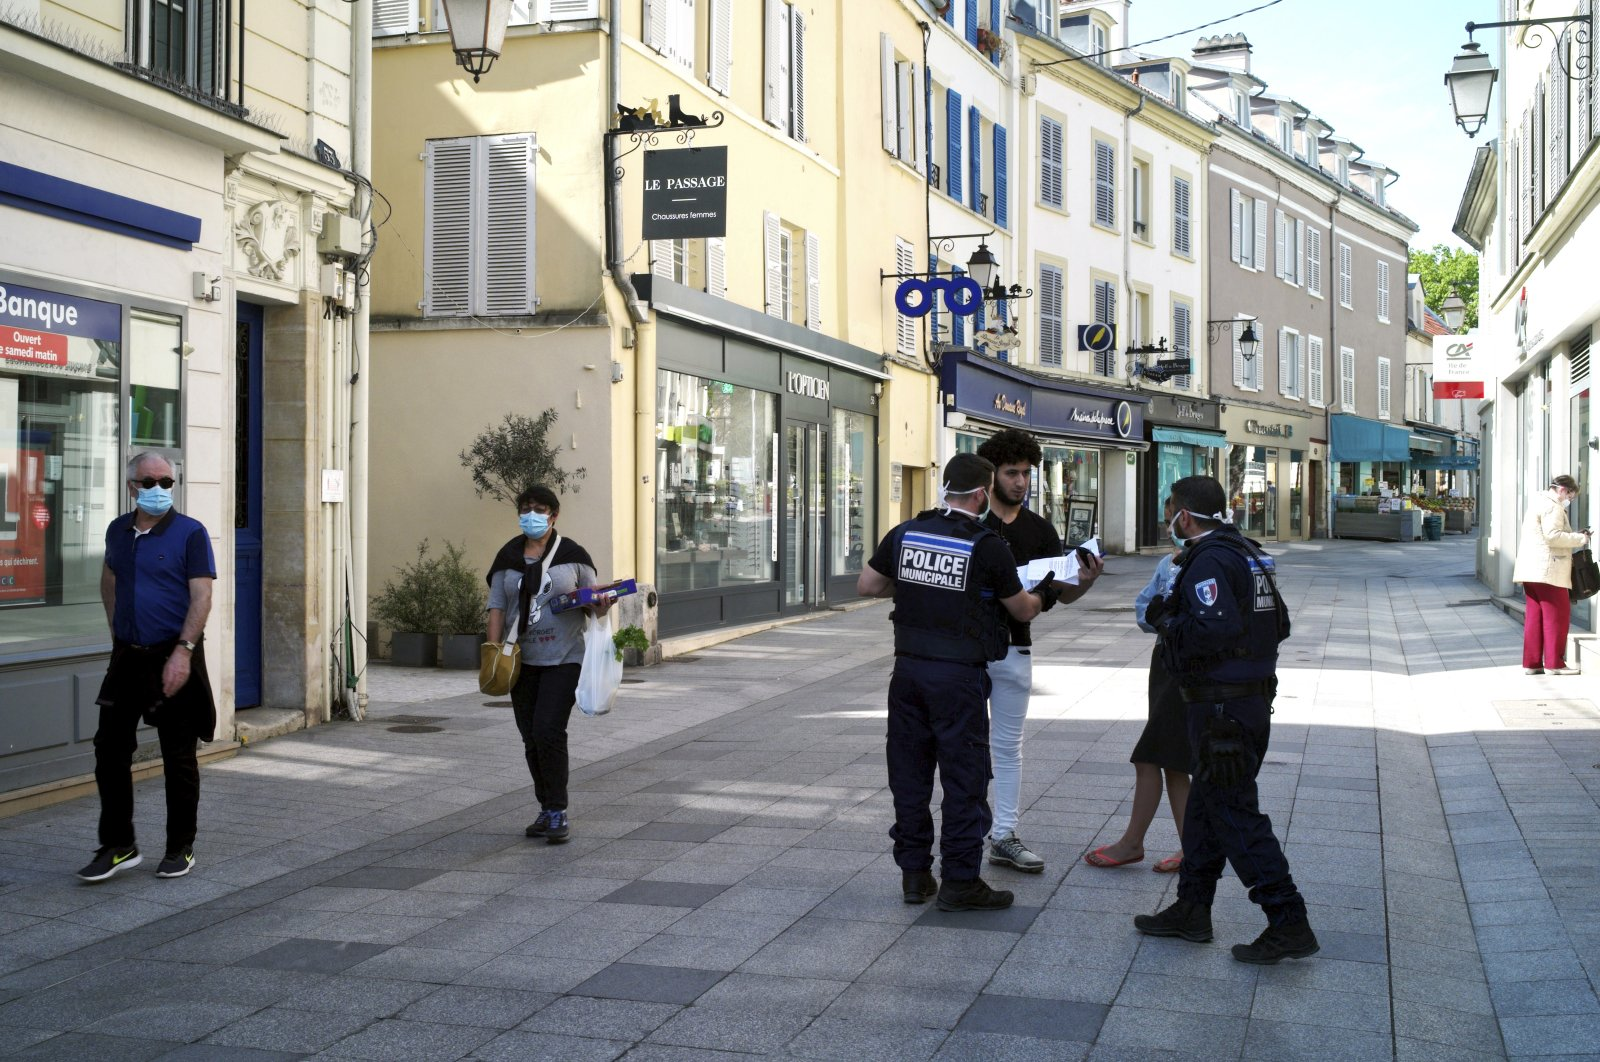 Municipal police officers check documents as they patrol in a street of Sceaux during nationwide confinement measures to counter the COVID-19, in Sceaux, south of Paris, Wednesday, April 8, 2020 (AP Photo)